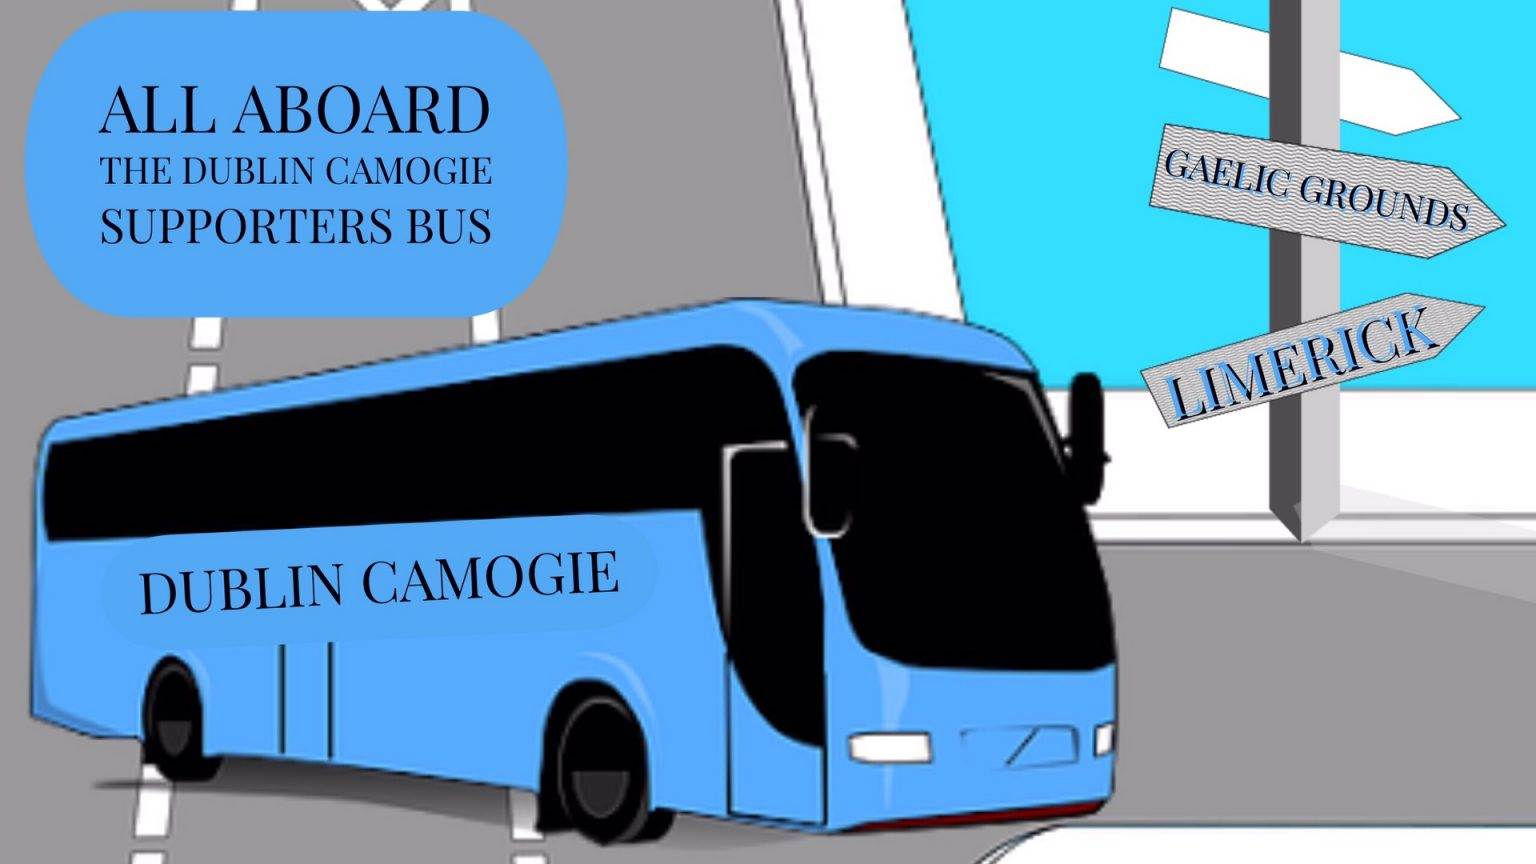 DUBLIN CAMOGIE COUNTY BOARD RUNNING SUPPORTERS BUS TO SEMI FINALS